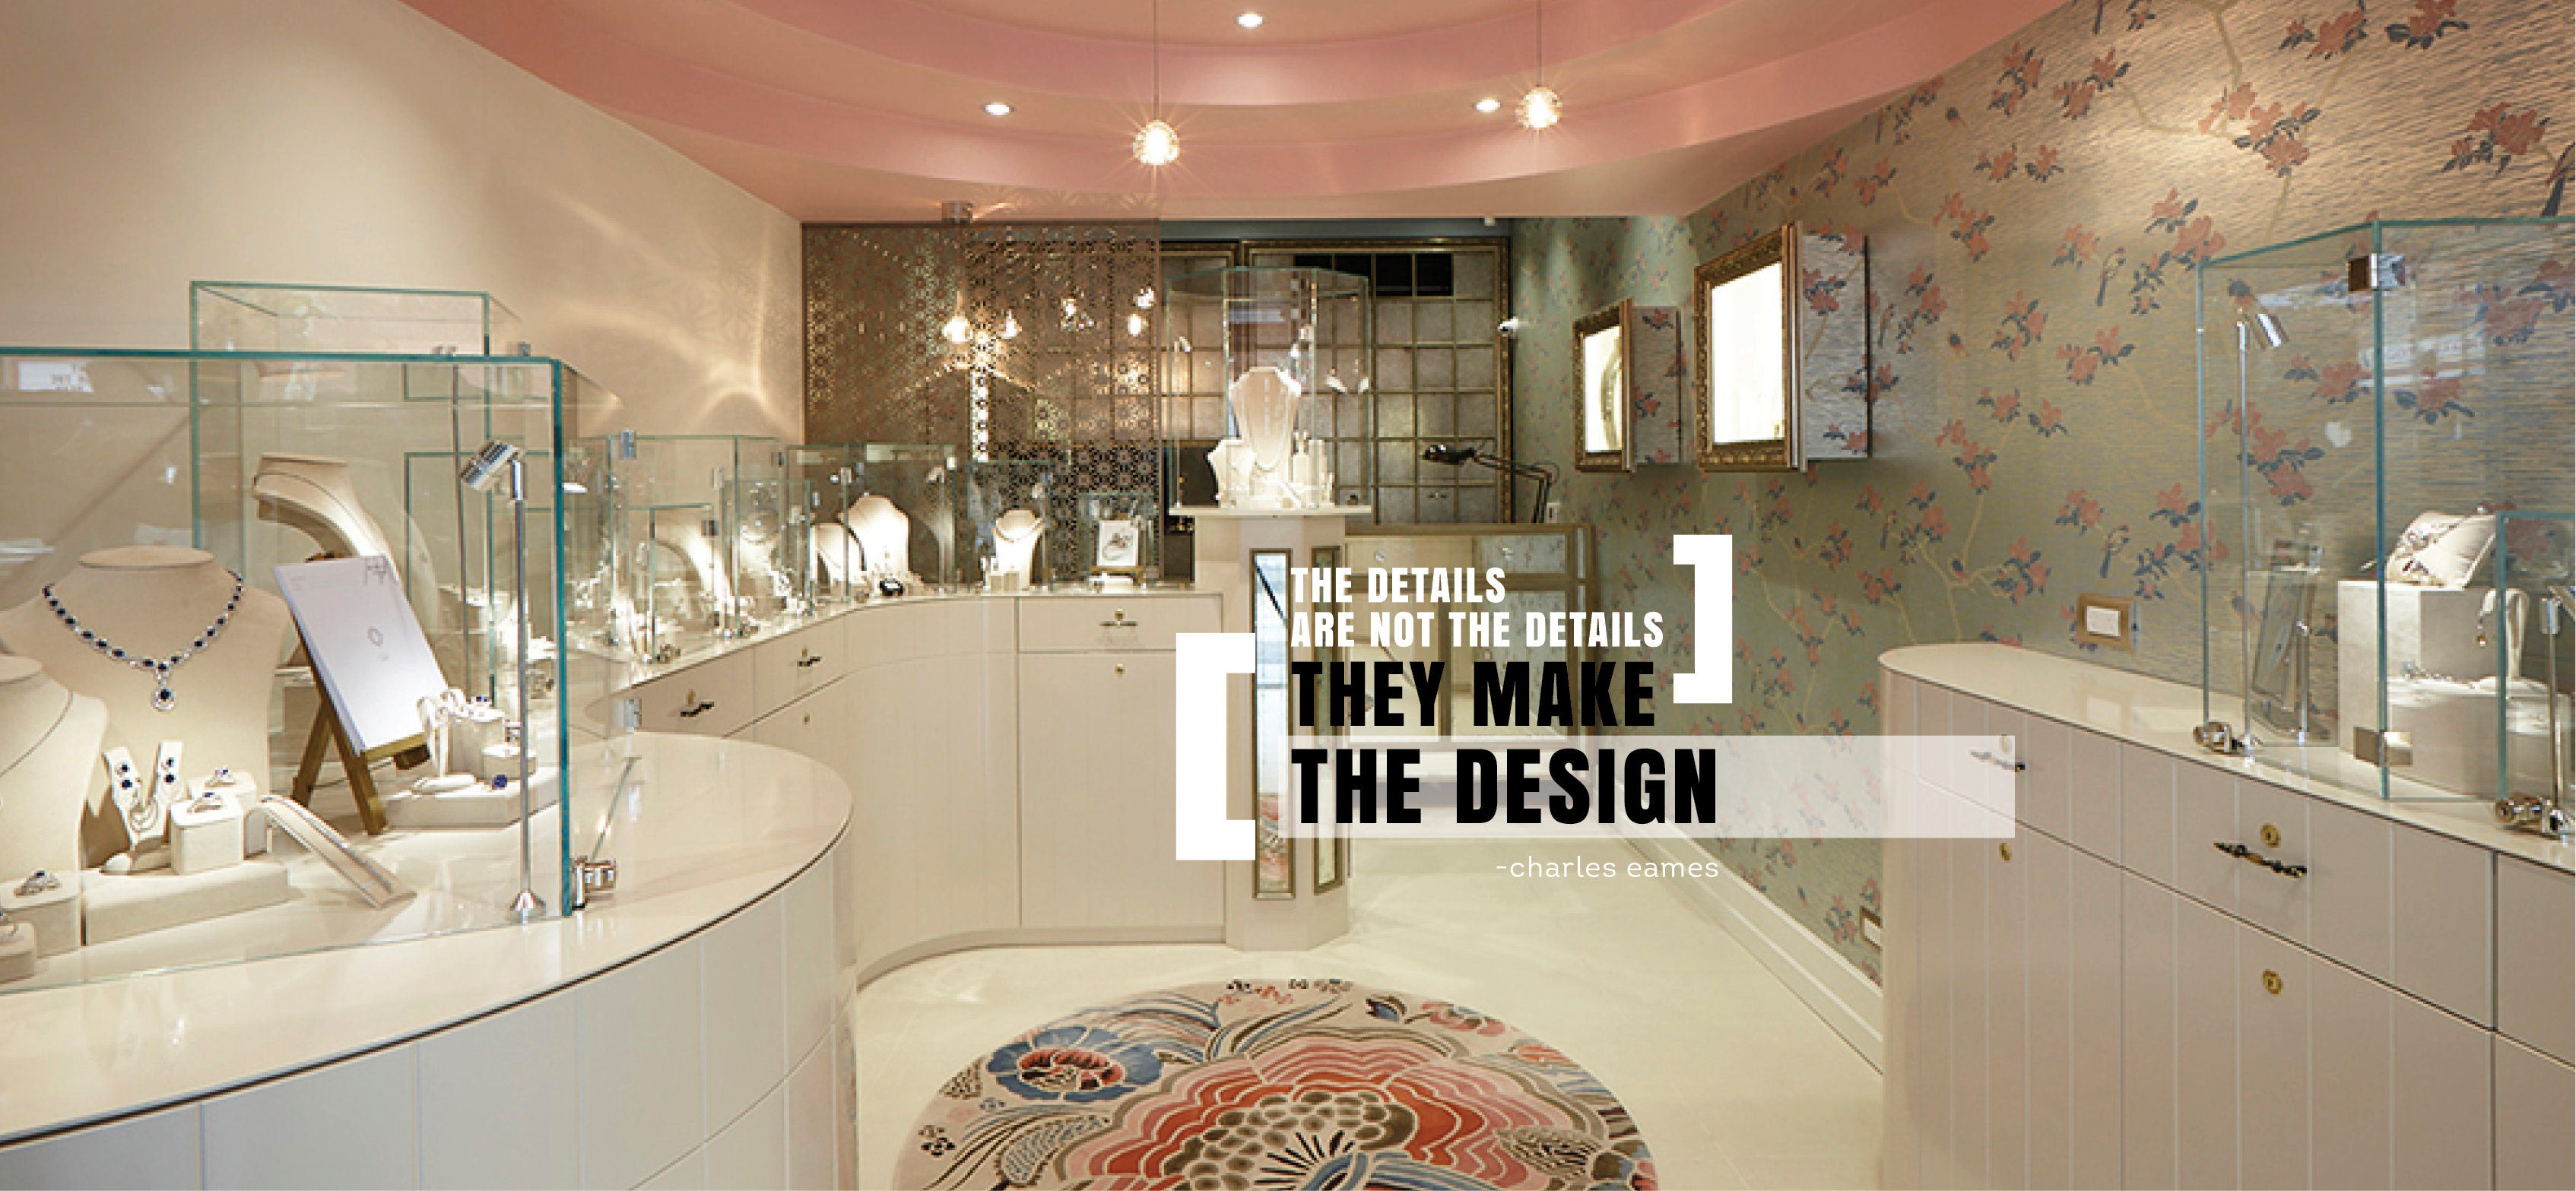 richie stevens interior designer australia design monocle designs jewellery store design matthew ely